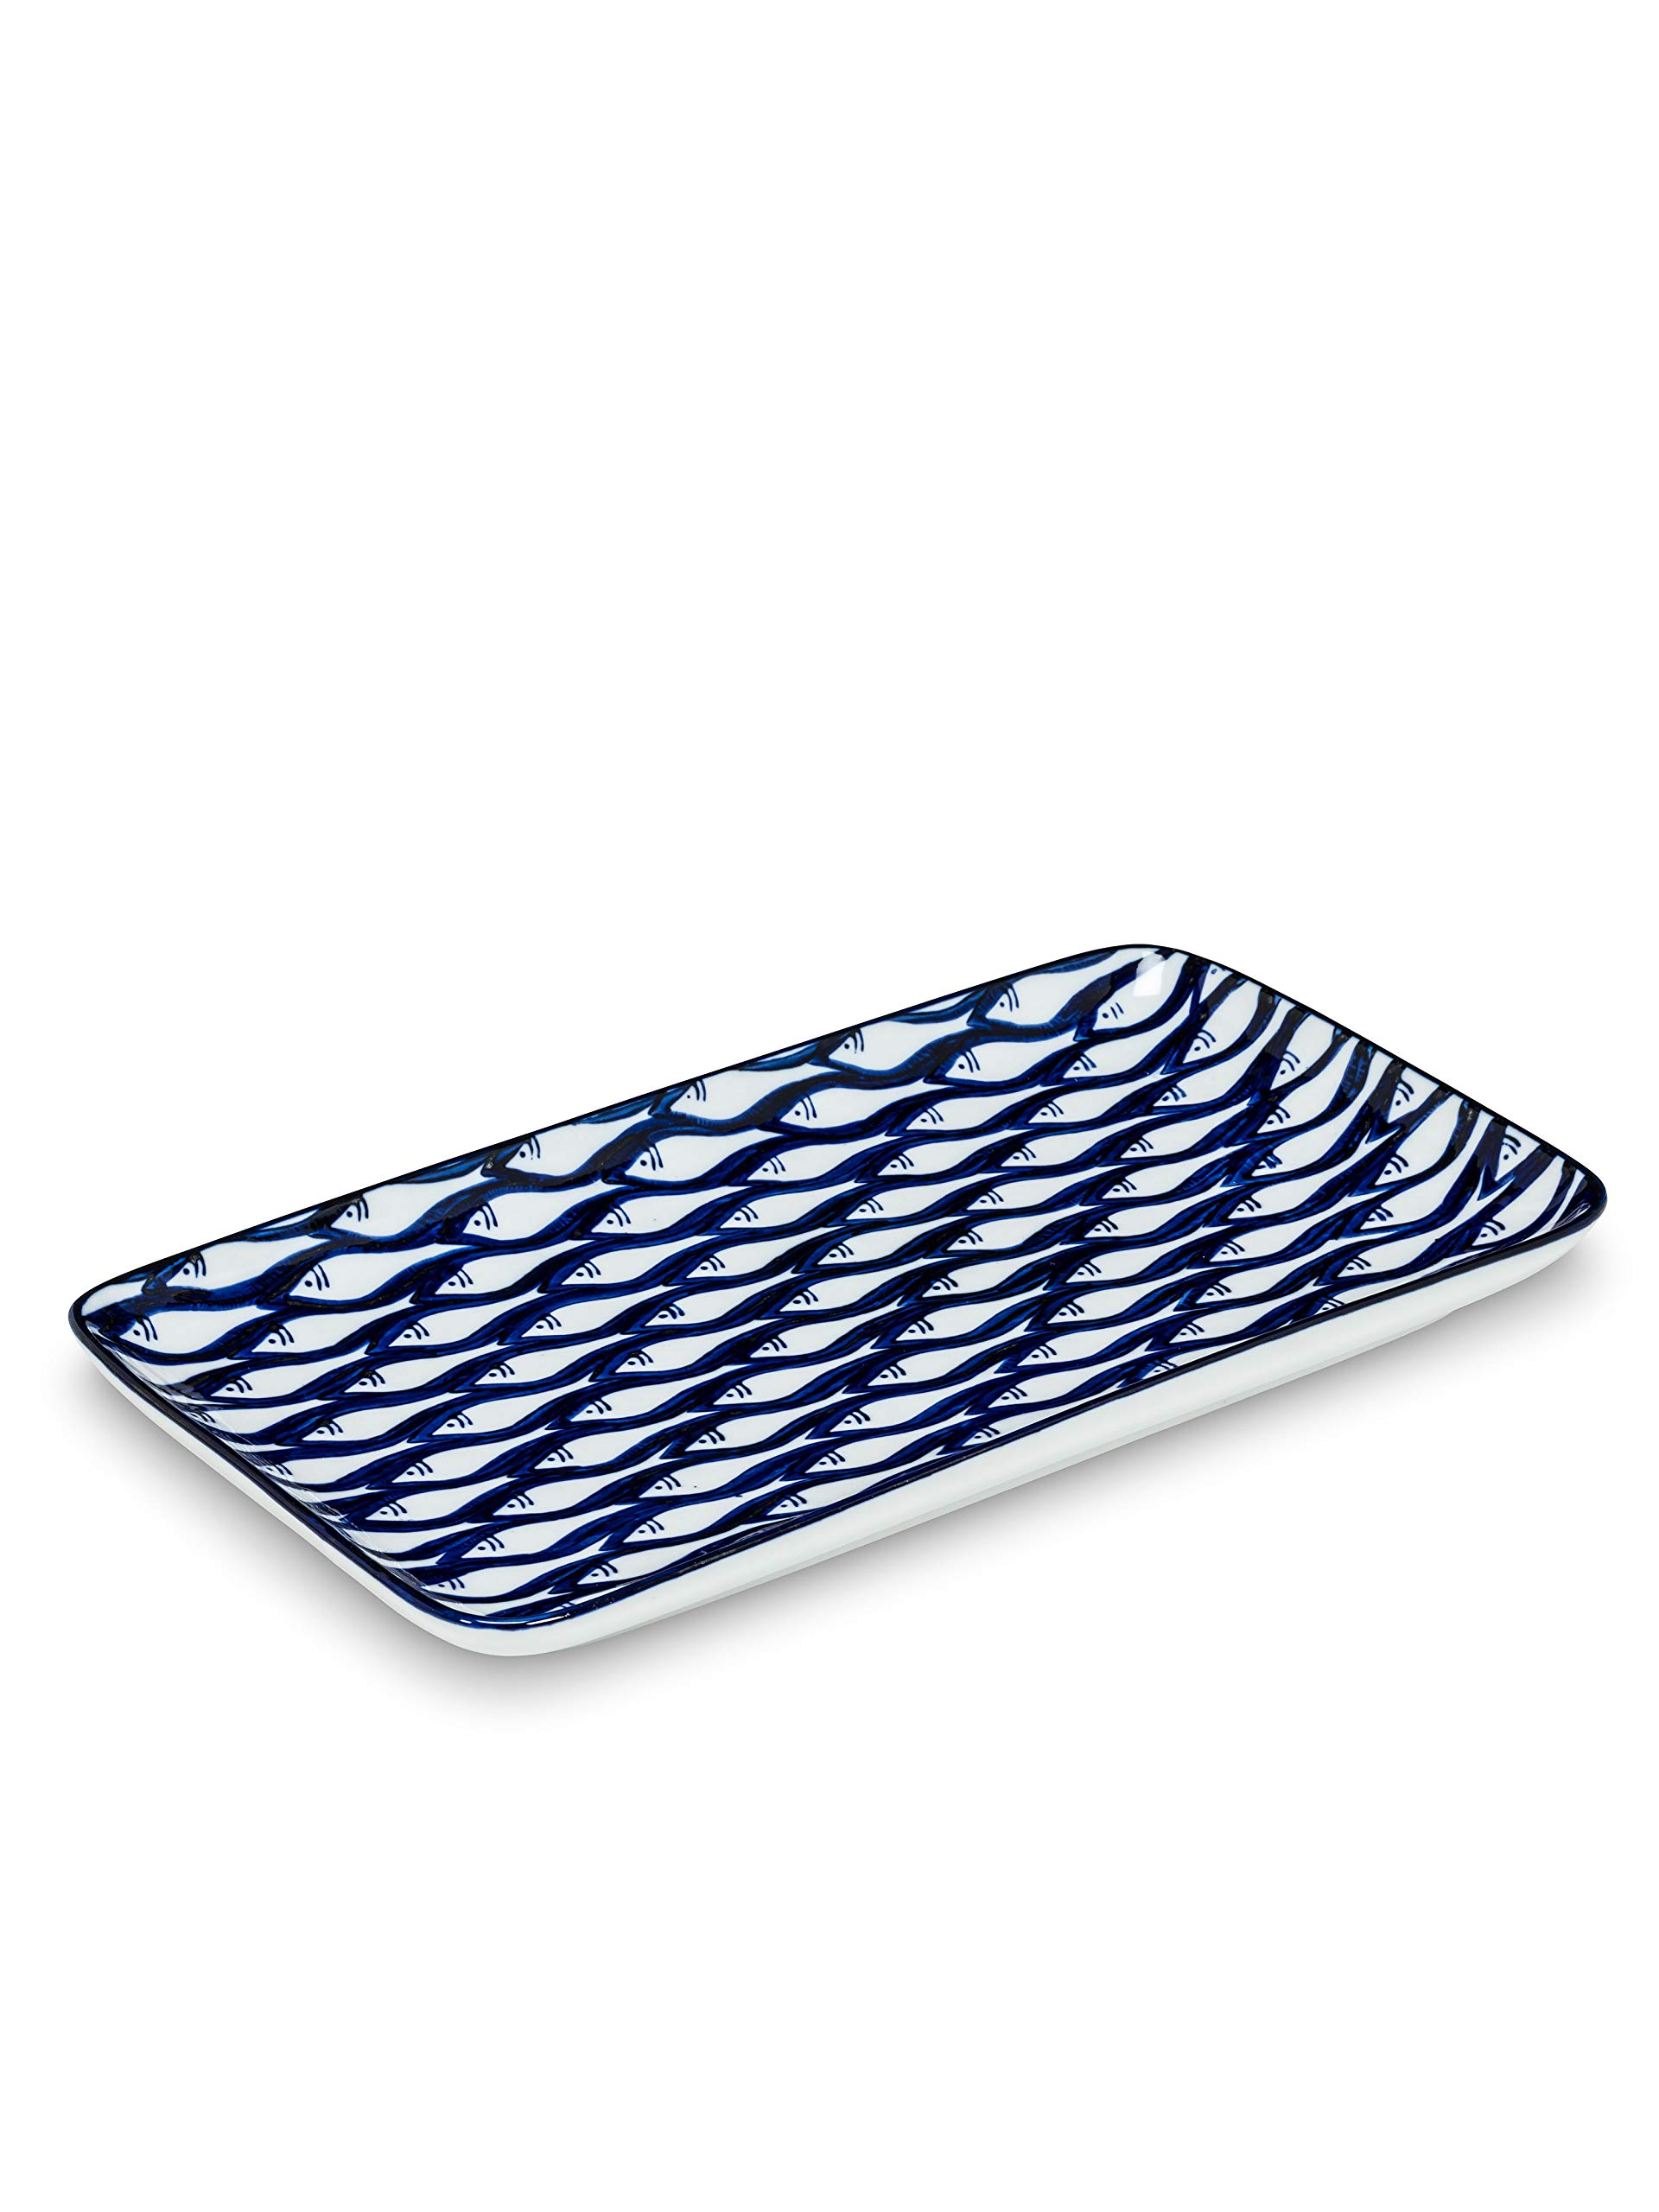 Abbott Collection 27-Cayman Rect Fish School Plate-6x11 L, 6x11 inches Long, Blue and White